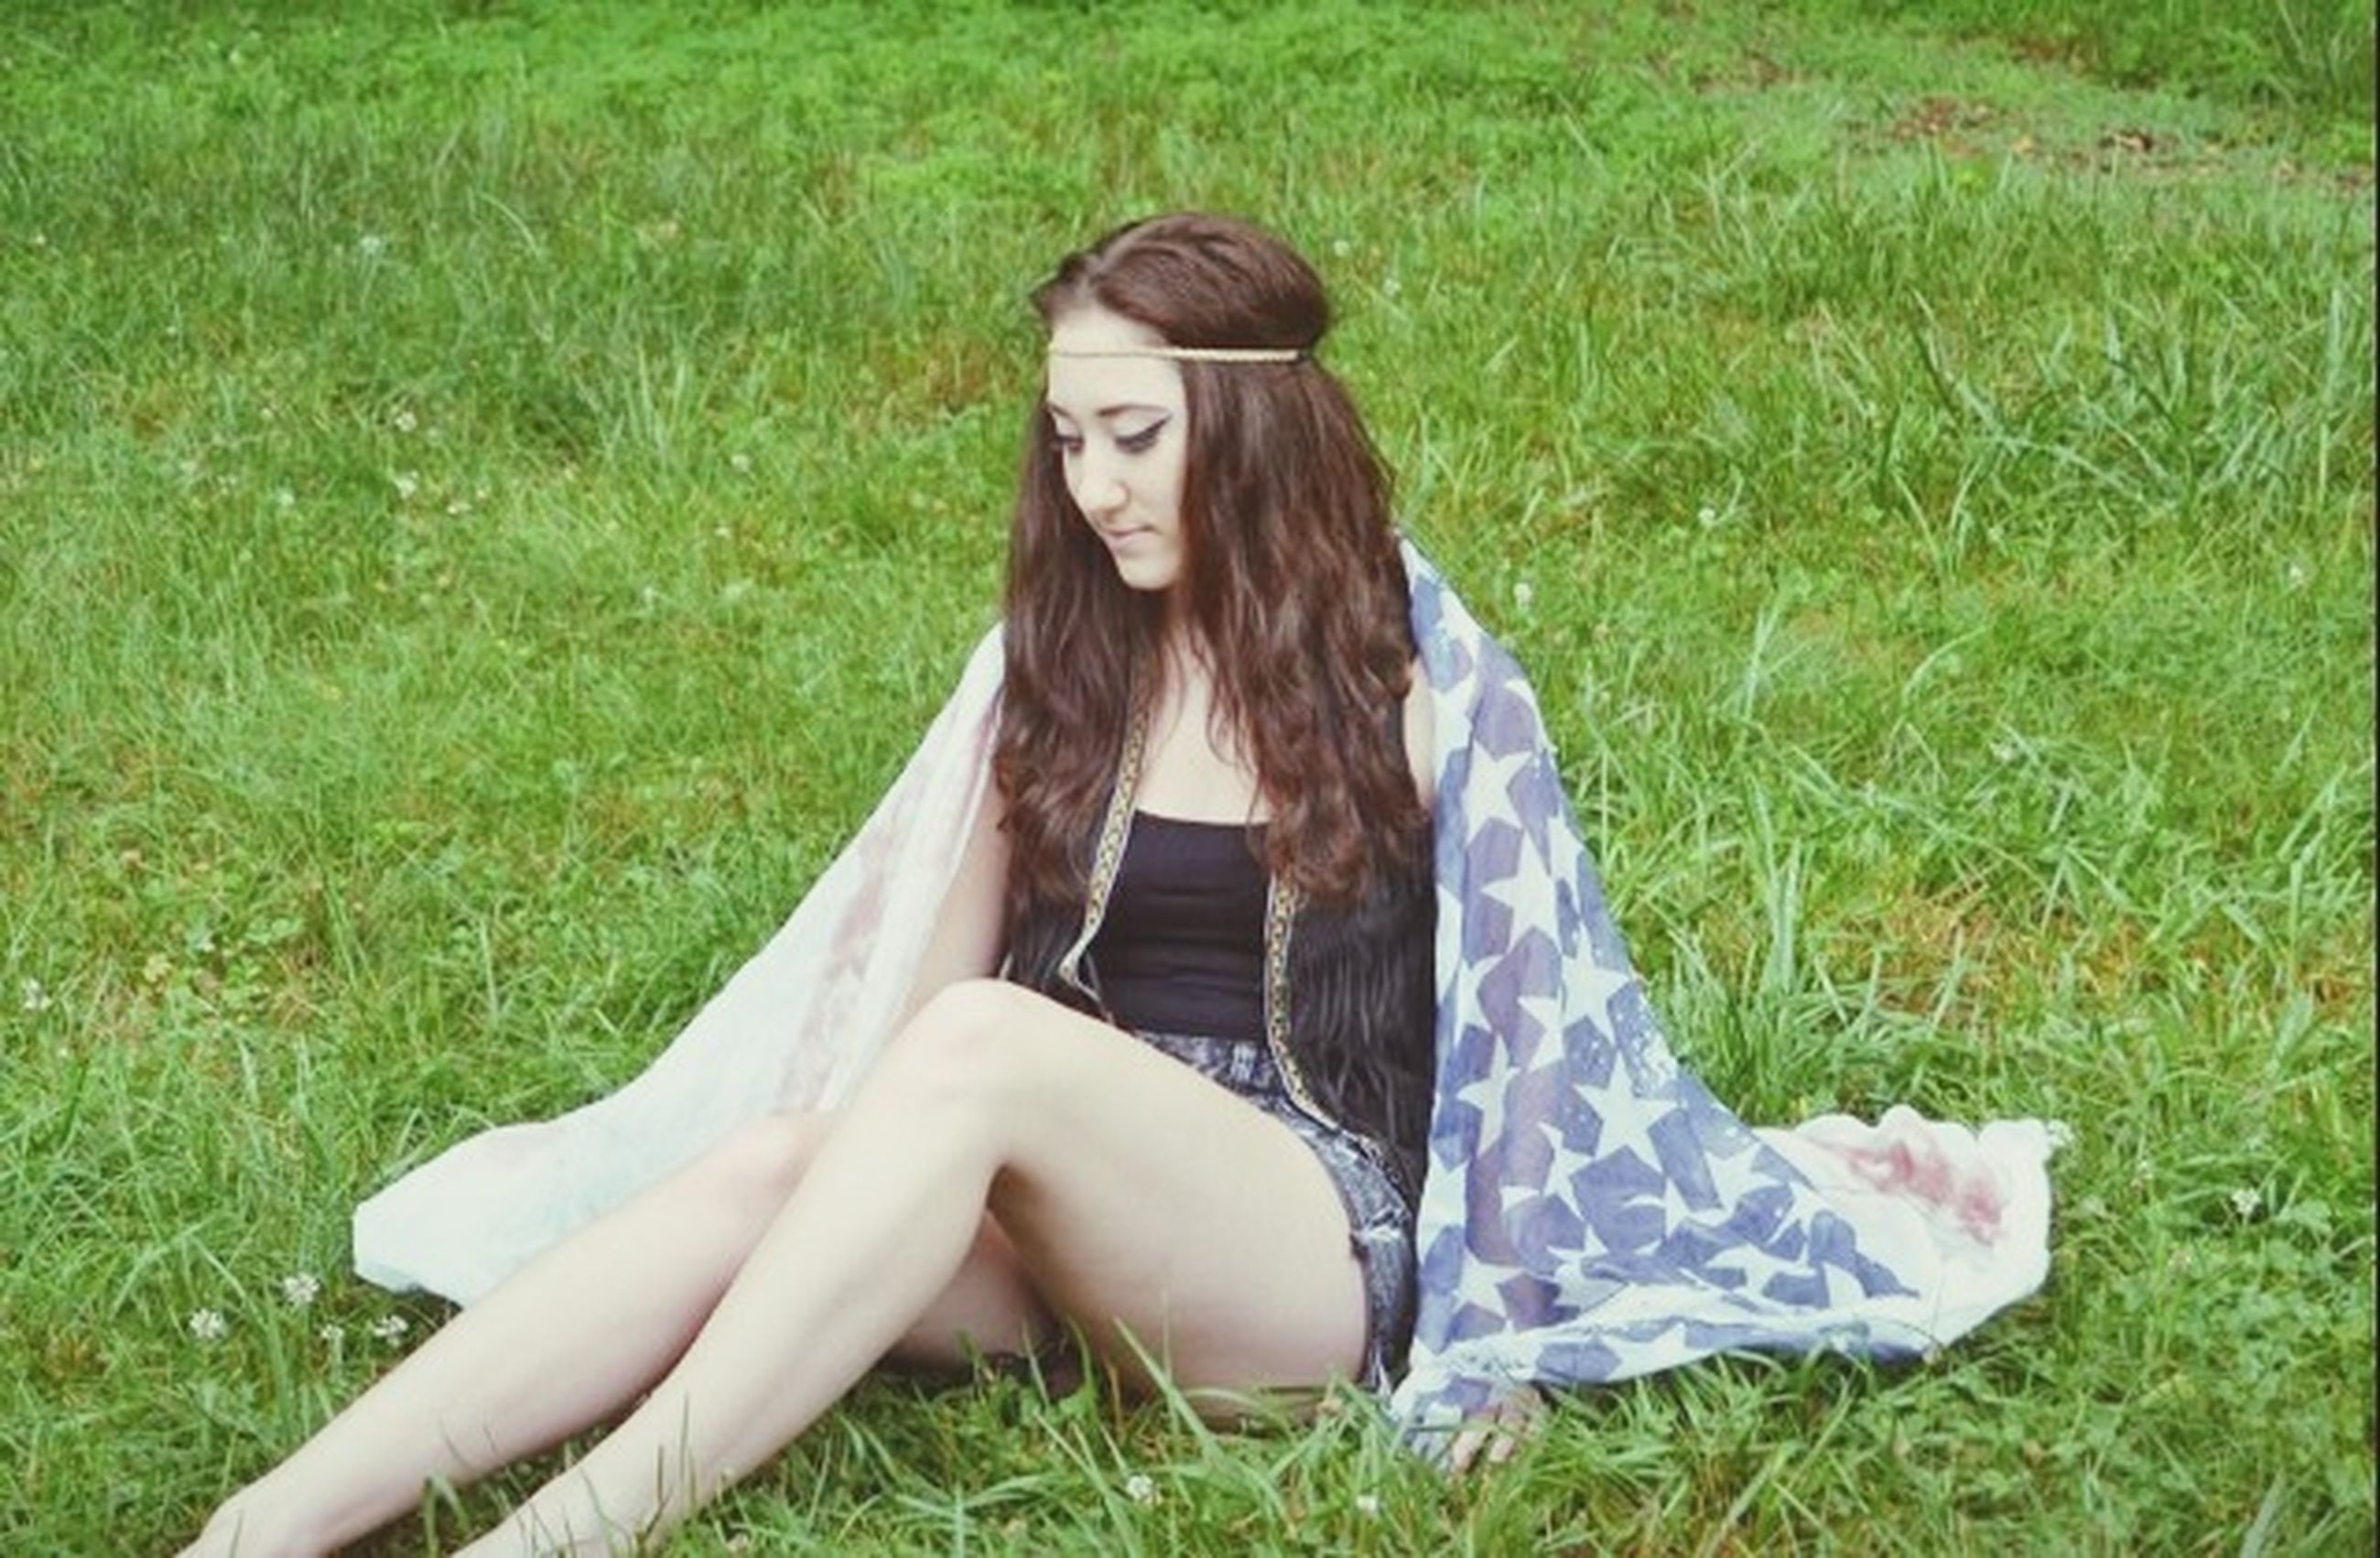 grass, grassy, field, young adult, person, young women, relaxation, lifestyles, casual clothing, leisure activity, sitting, three quarter length, looking at camera, portrait, lying down, full length, front view